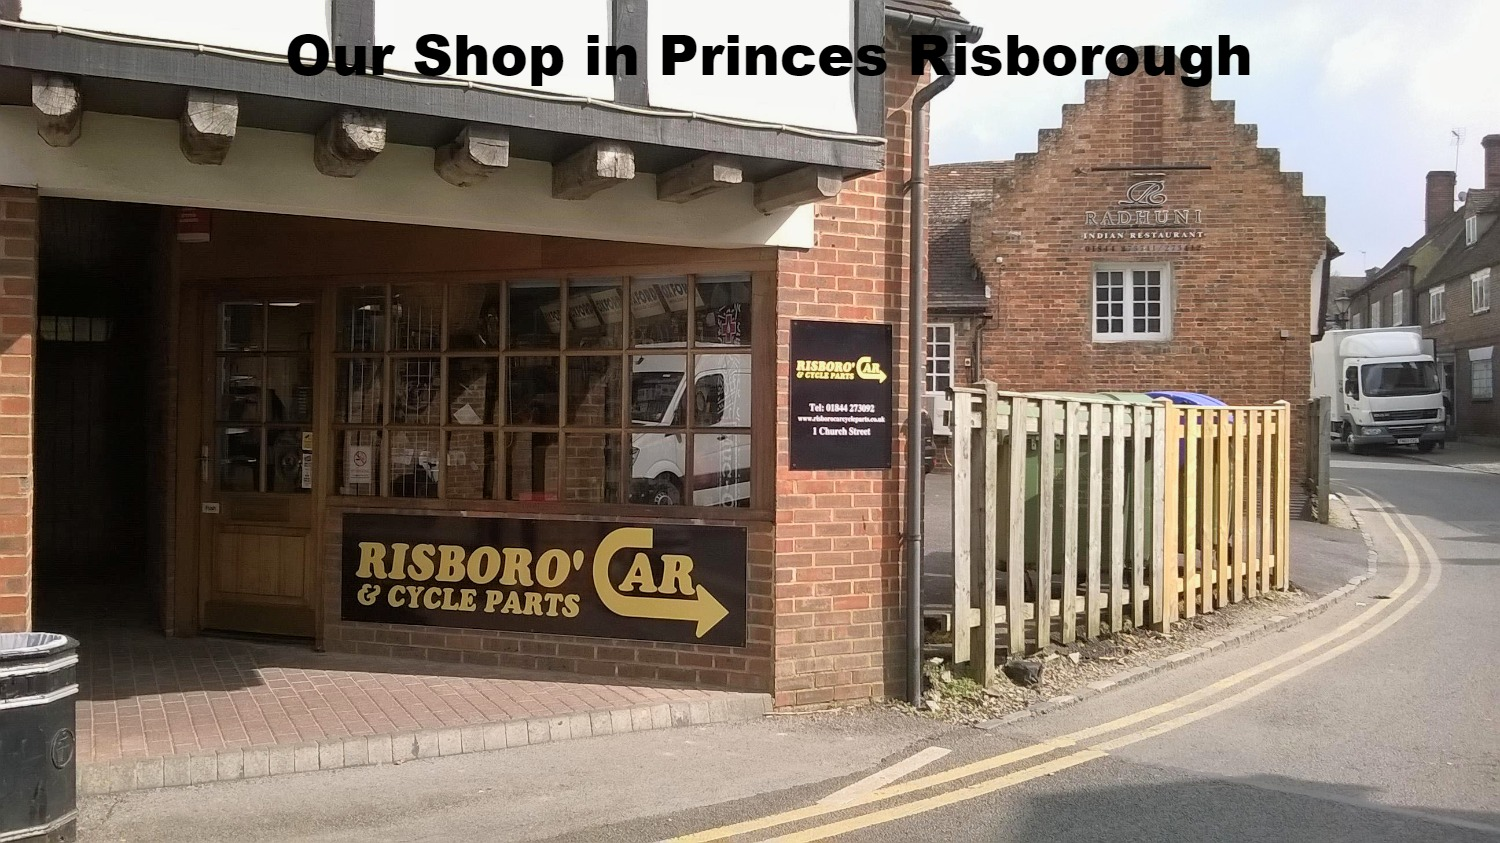 We're in Princes Risborough